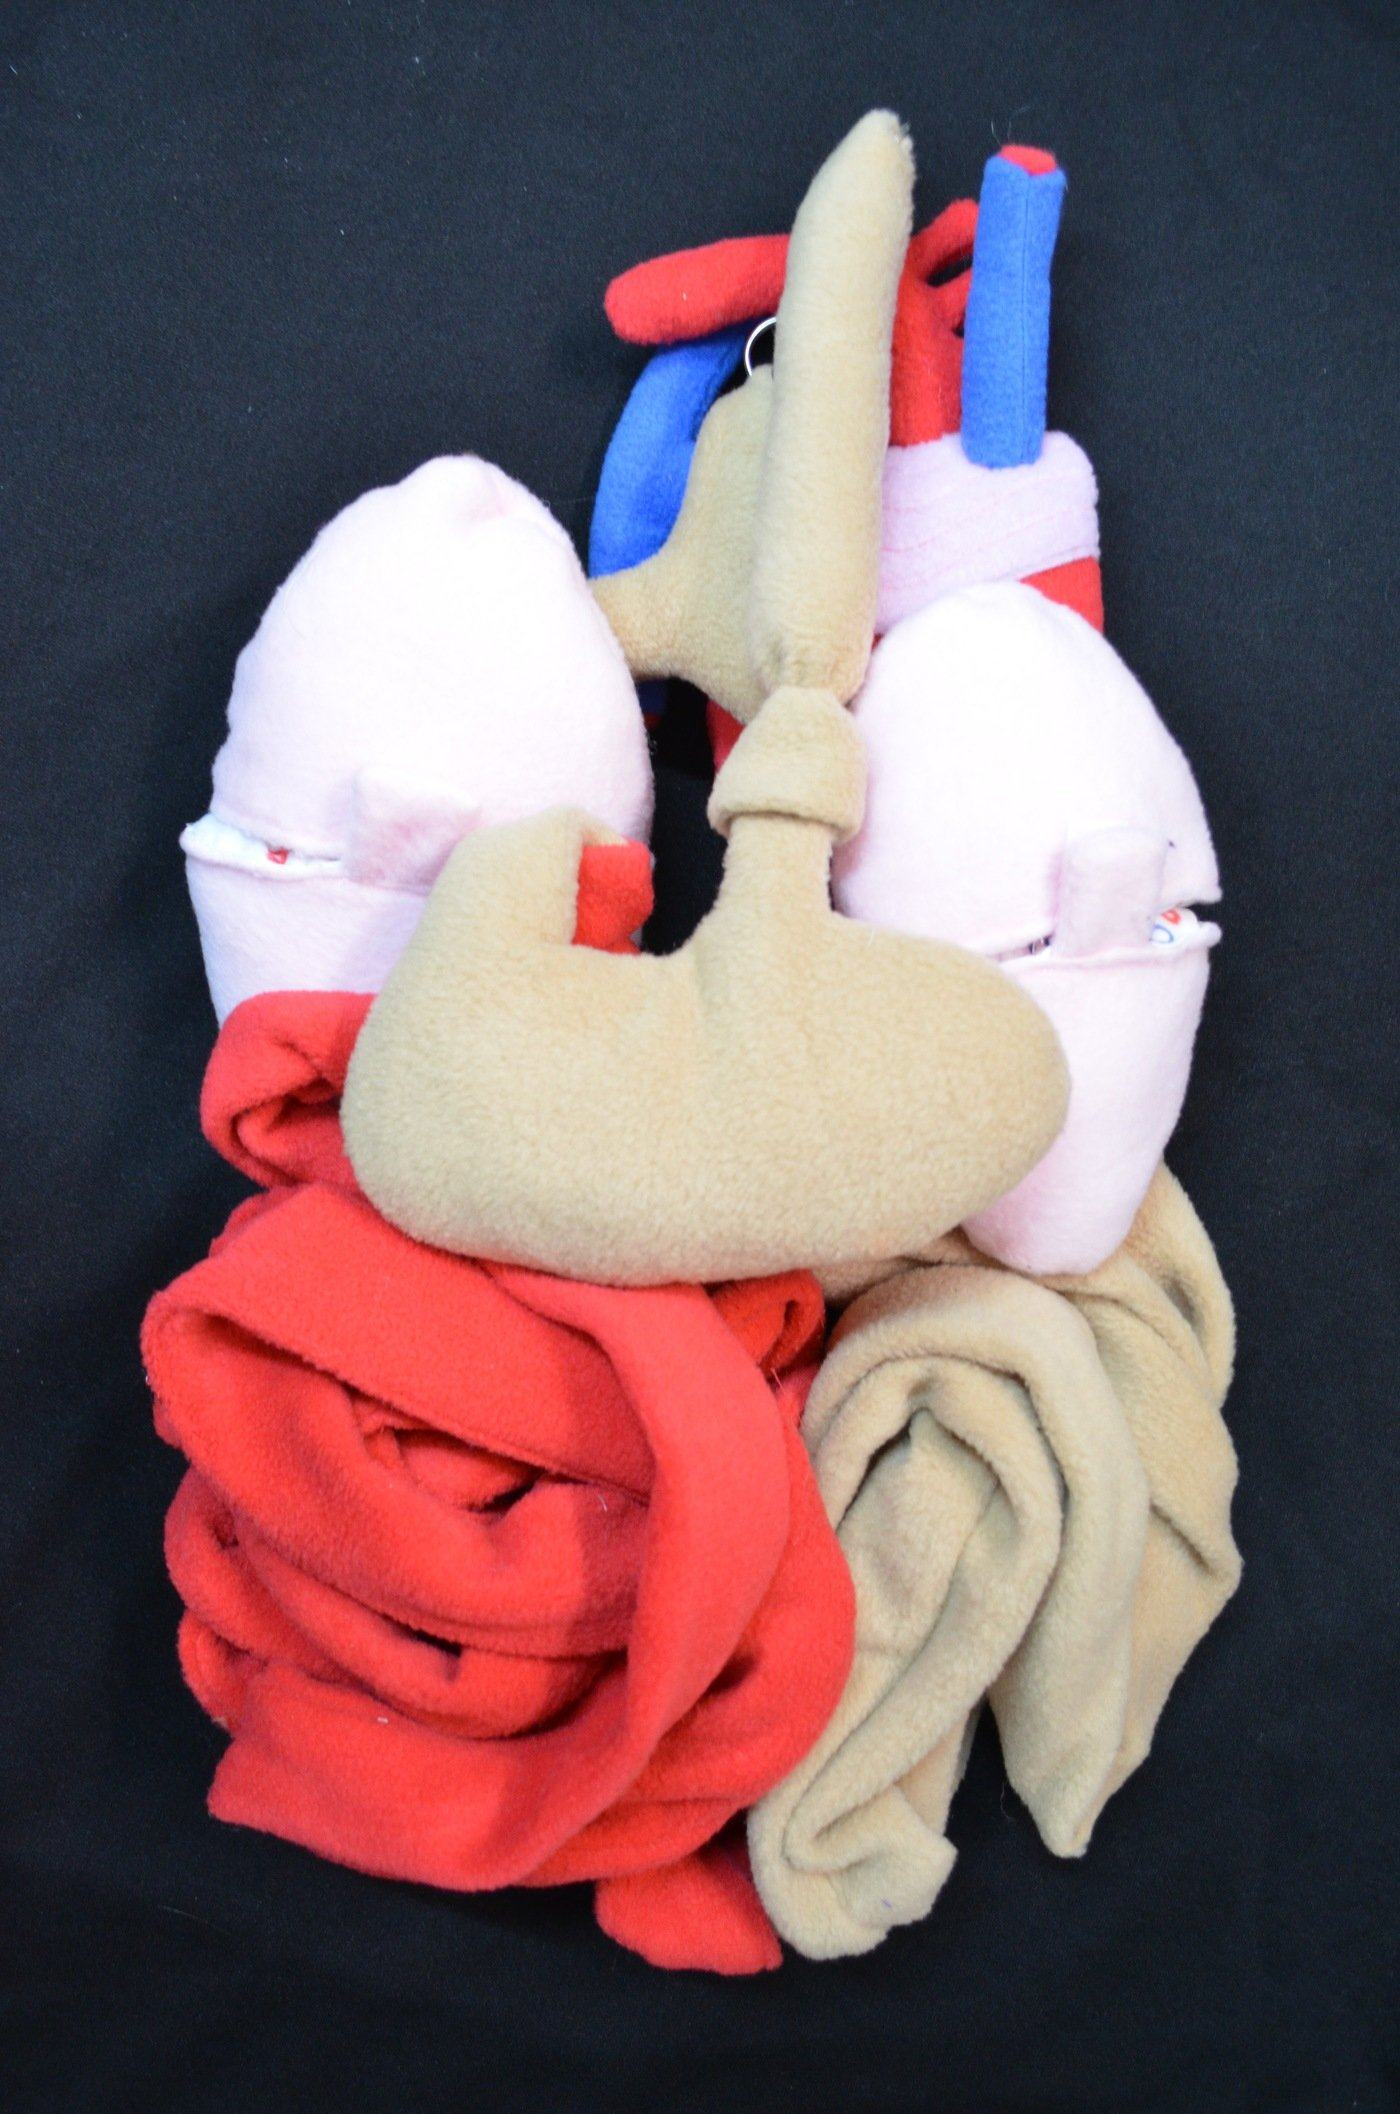 Anatomy Doll by Elysia Pascale at Coroflot.com